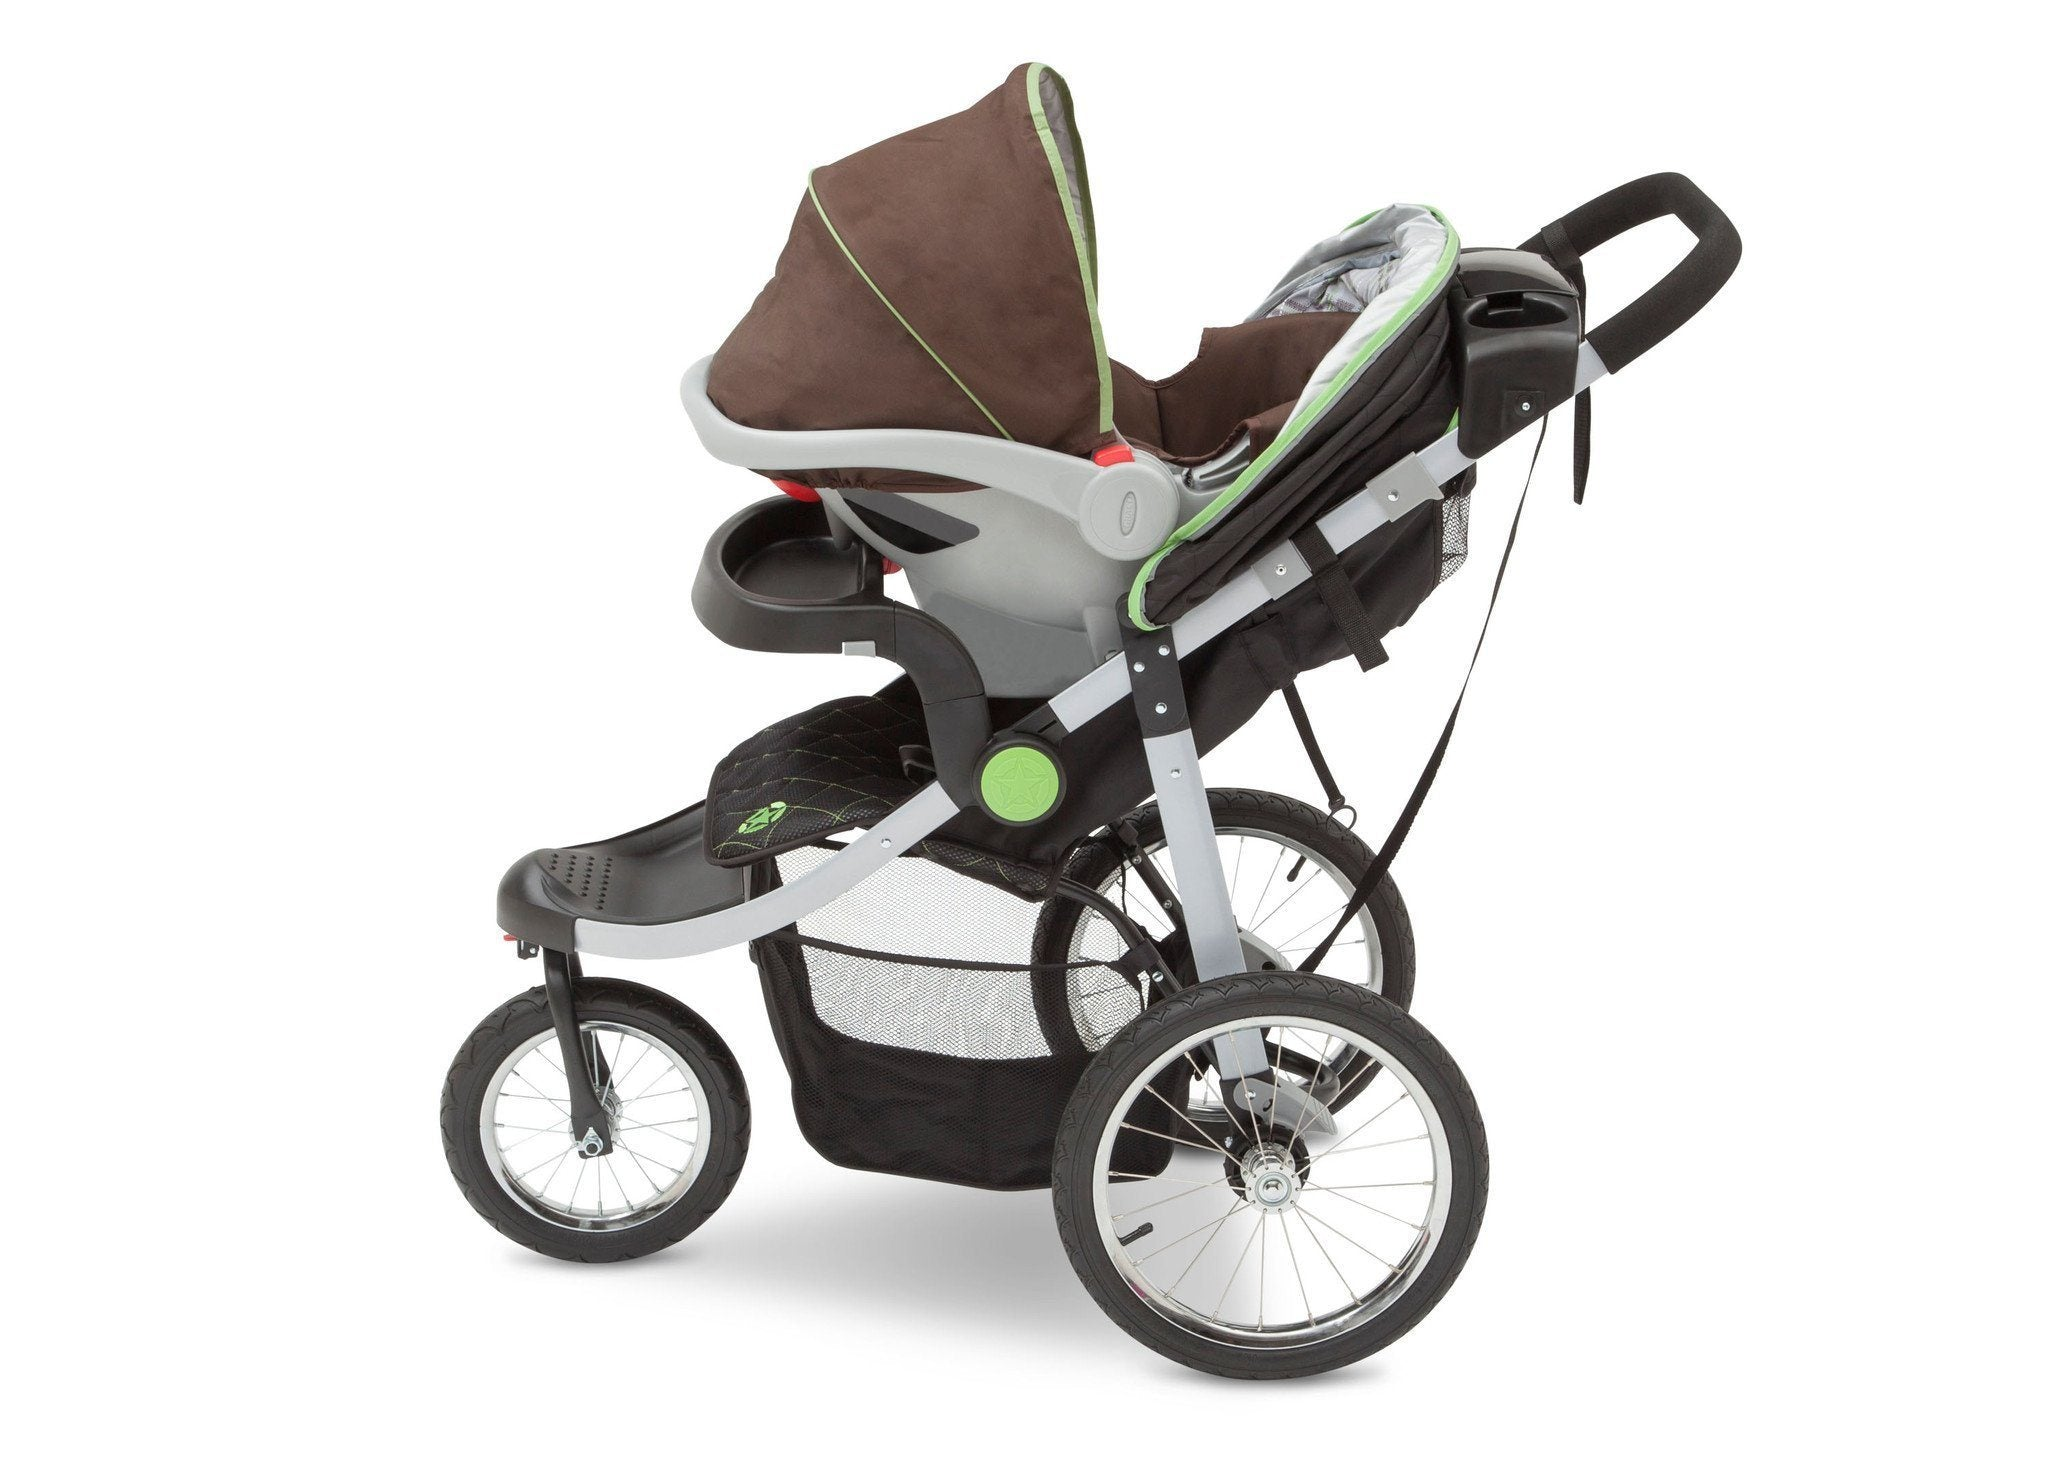 Delta Children J is for Jeep Brand Fairway (340) Cross Country All Terrain Jogging Stroller with infant car seat, f4f